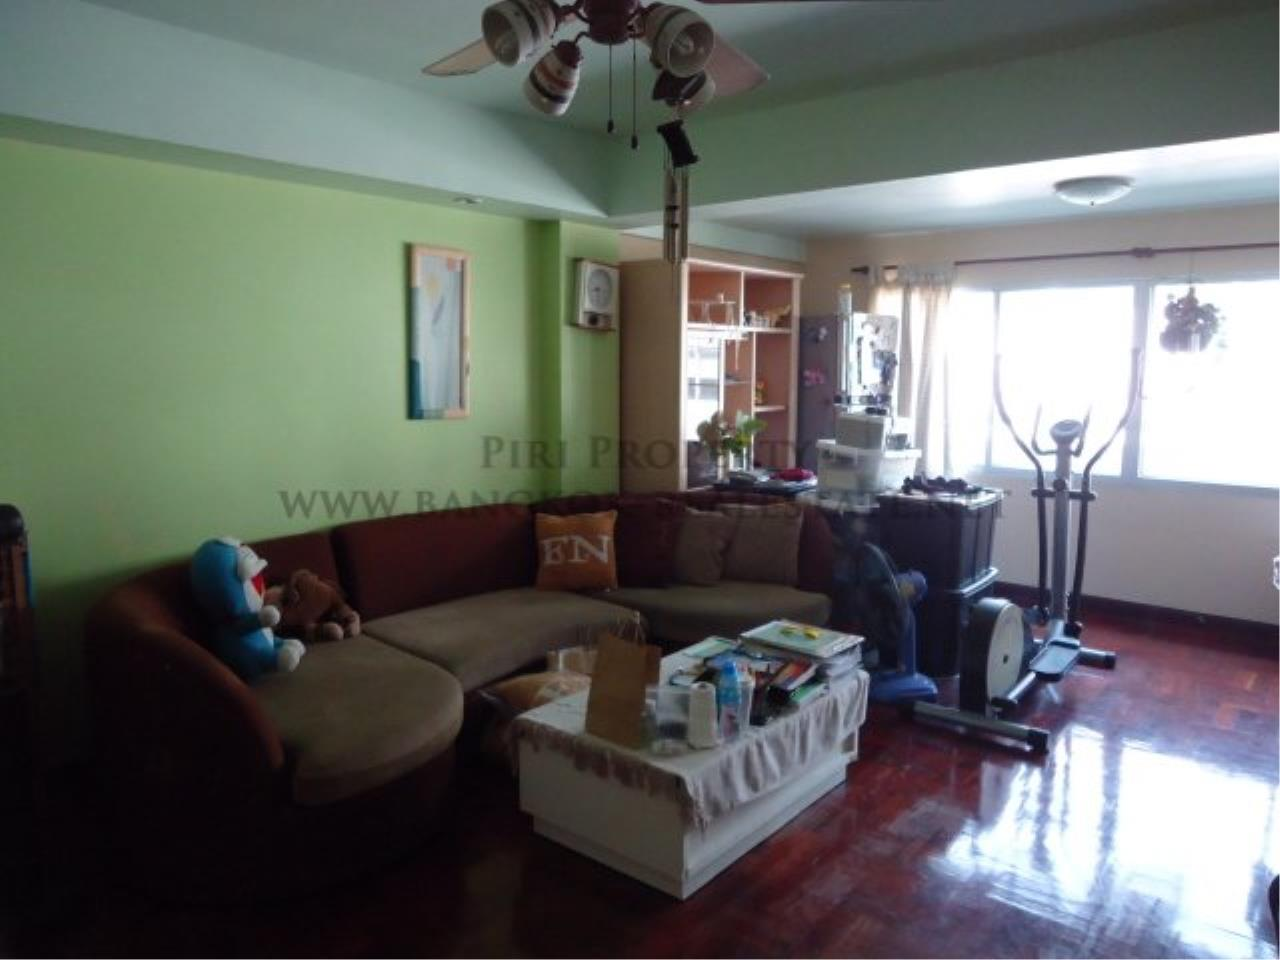 Piri Property Agency's Baan Sukhuthai - Spacious 1 Bed Condo for Rent - 65 SQM 1